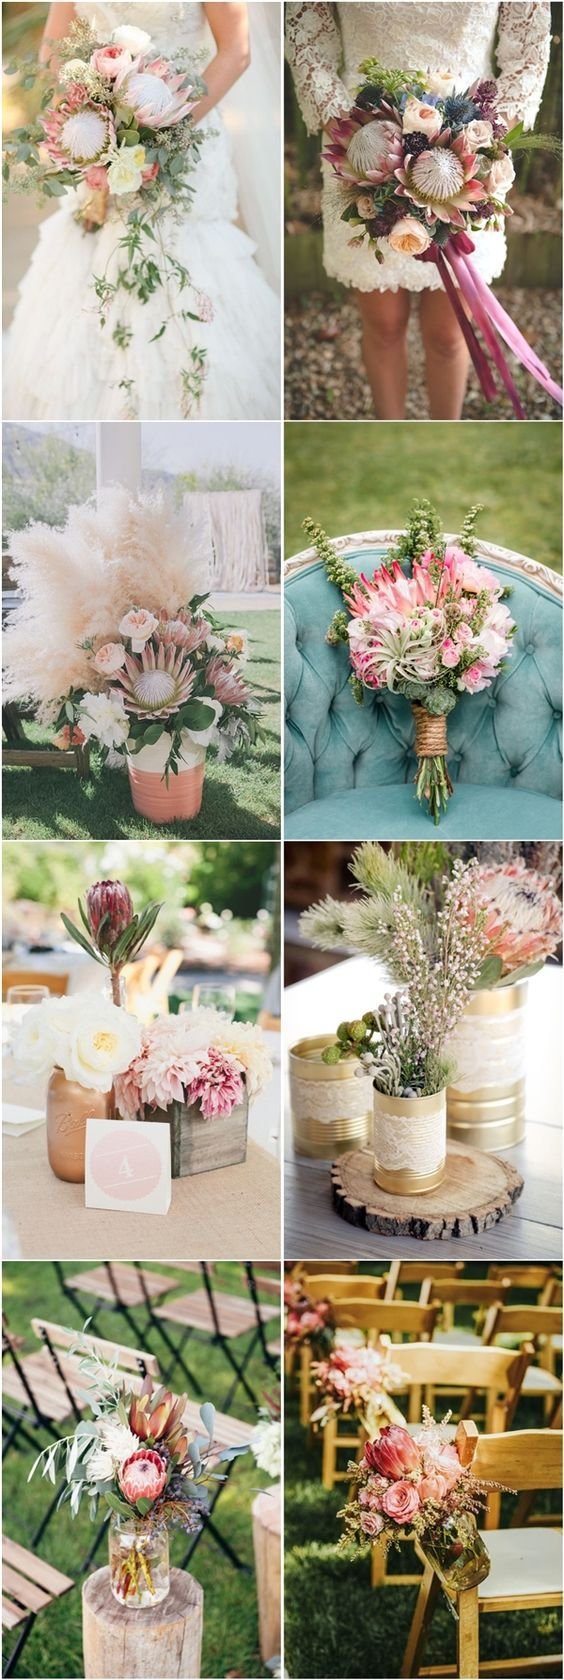 If you want wedding flowers grown on Maui, protea is the way to go! We love these protea ideas & the protea bouquets featured in Simple Maui Wedding designed by Dellables!